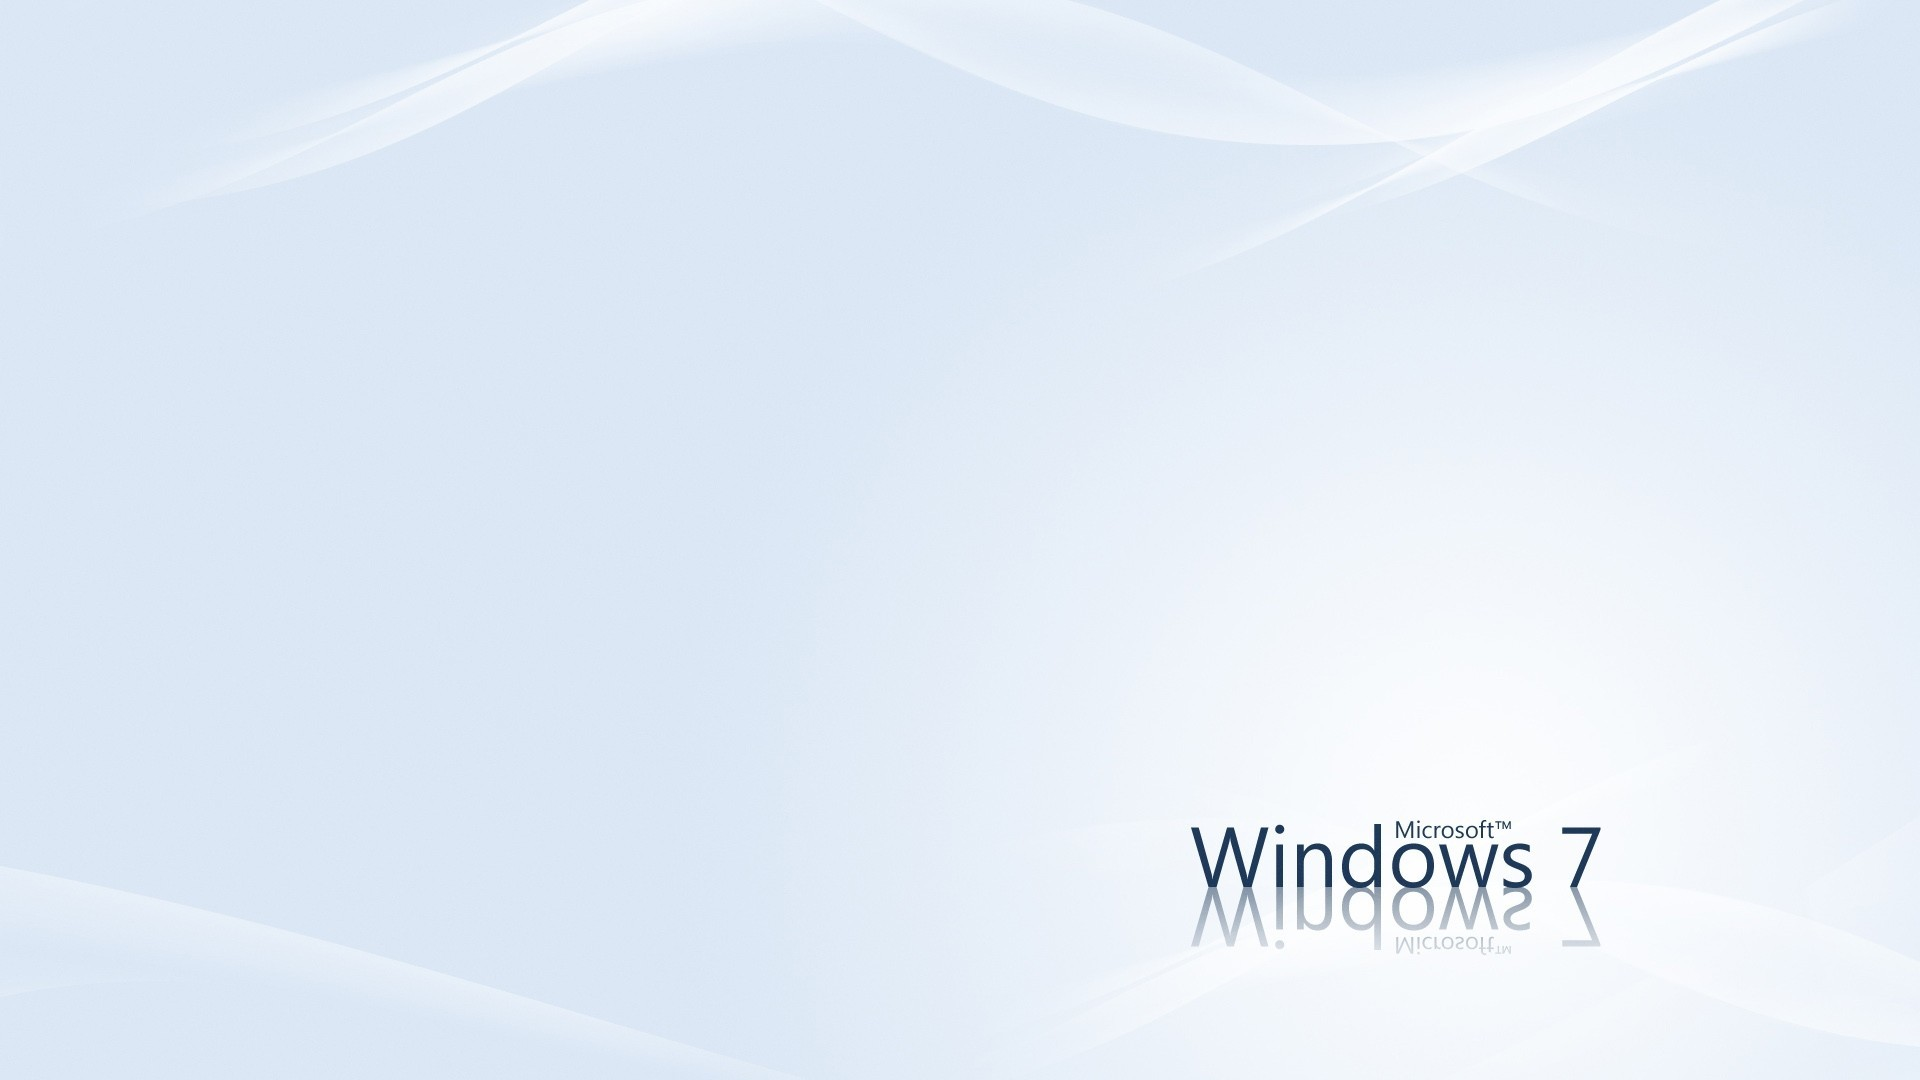 windows 7 HD Wallpaper